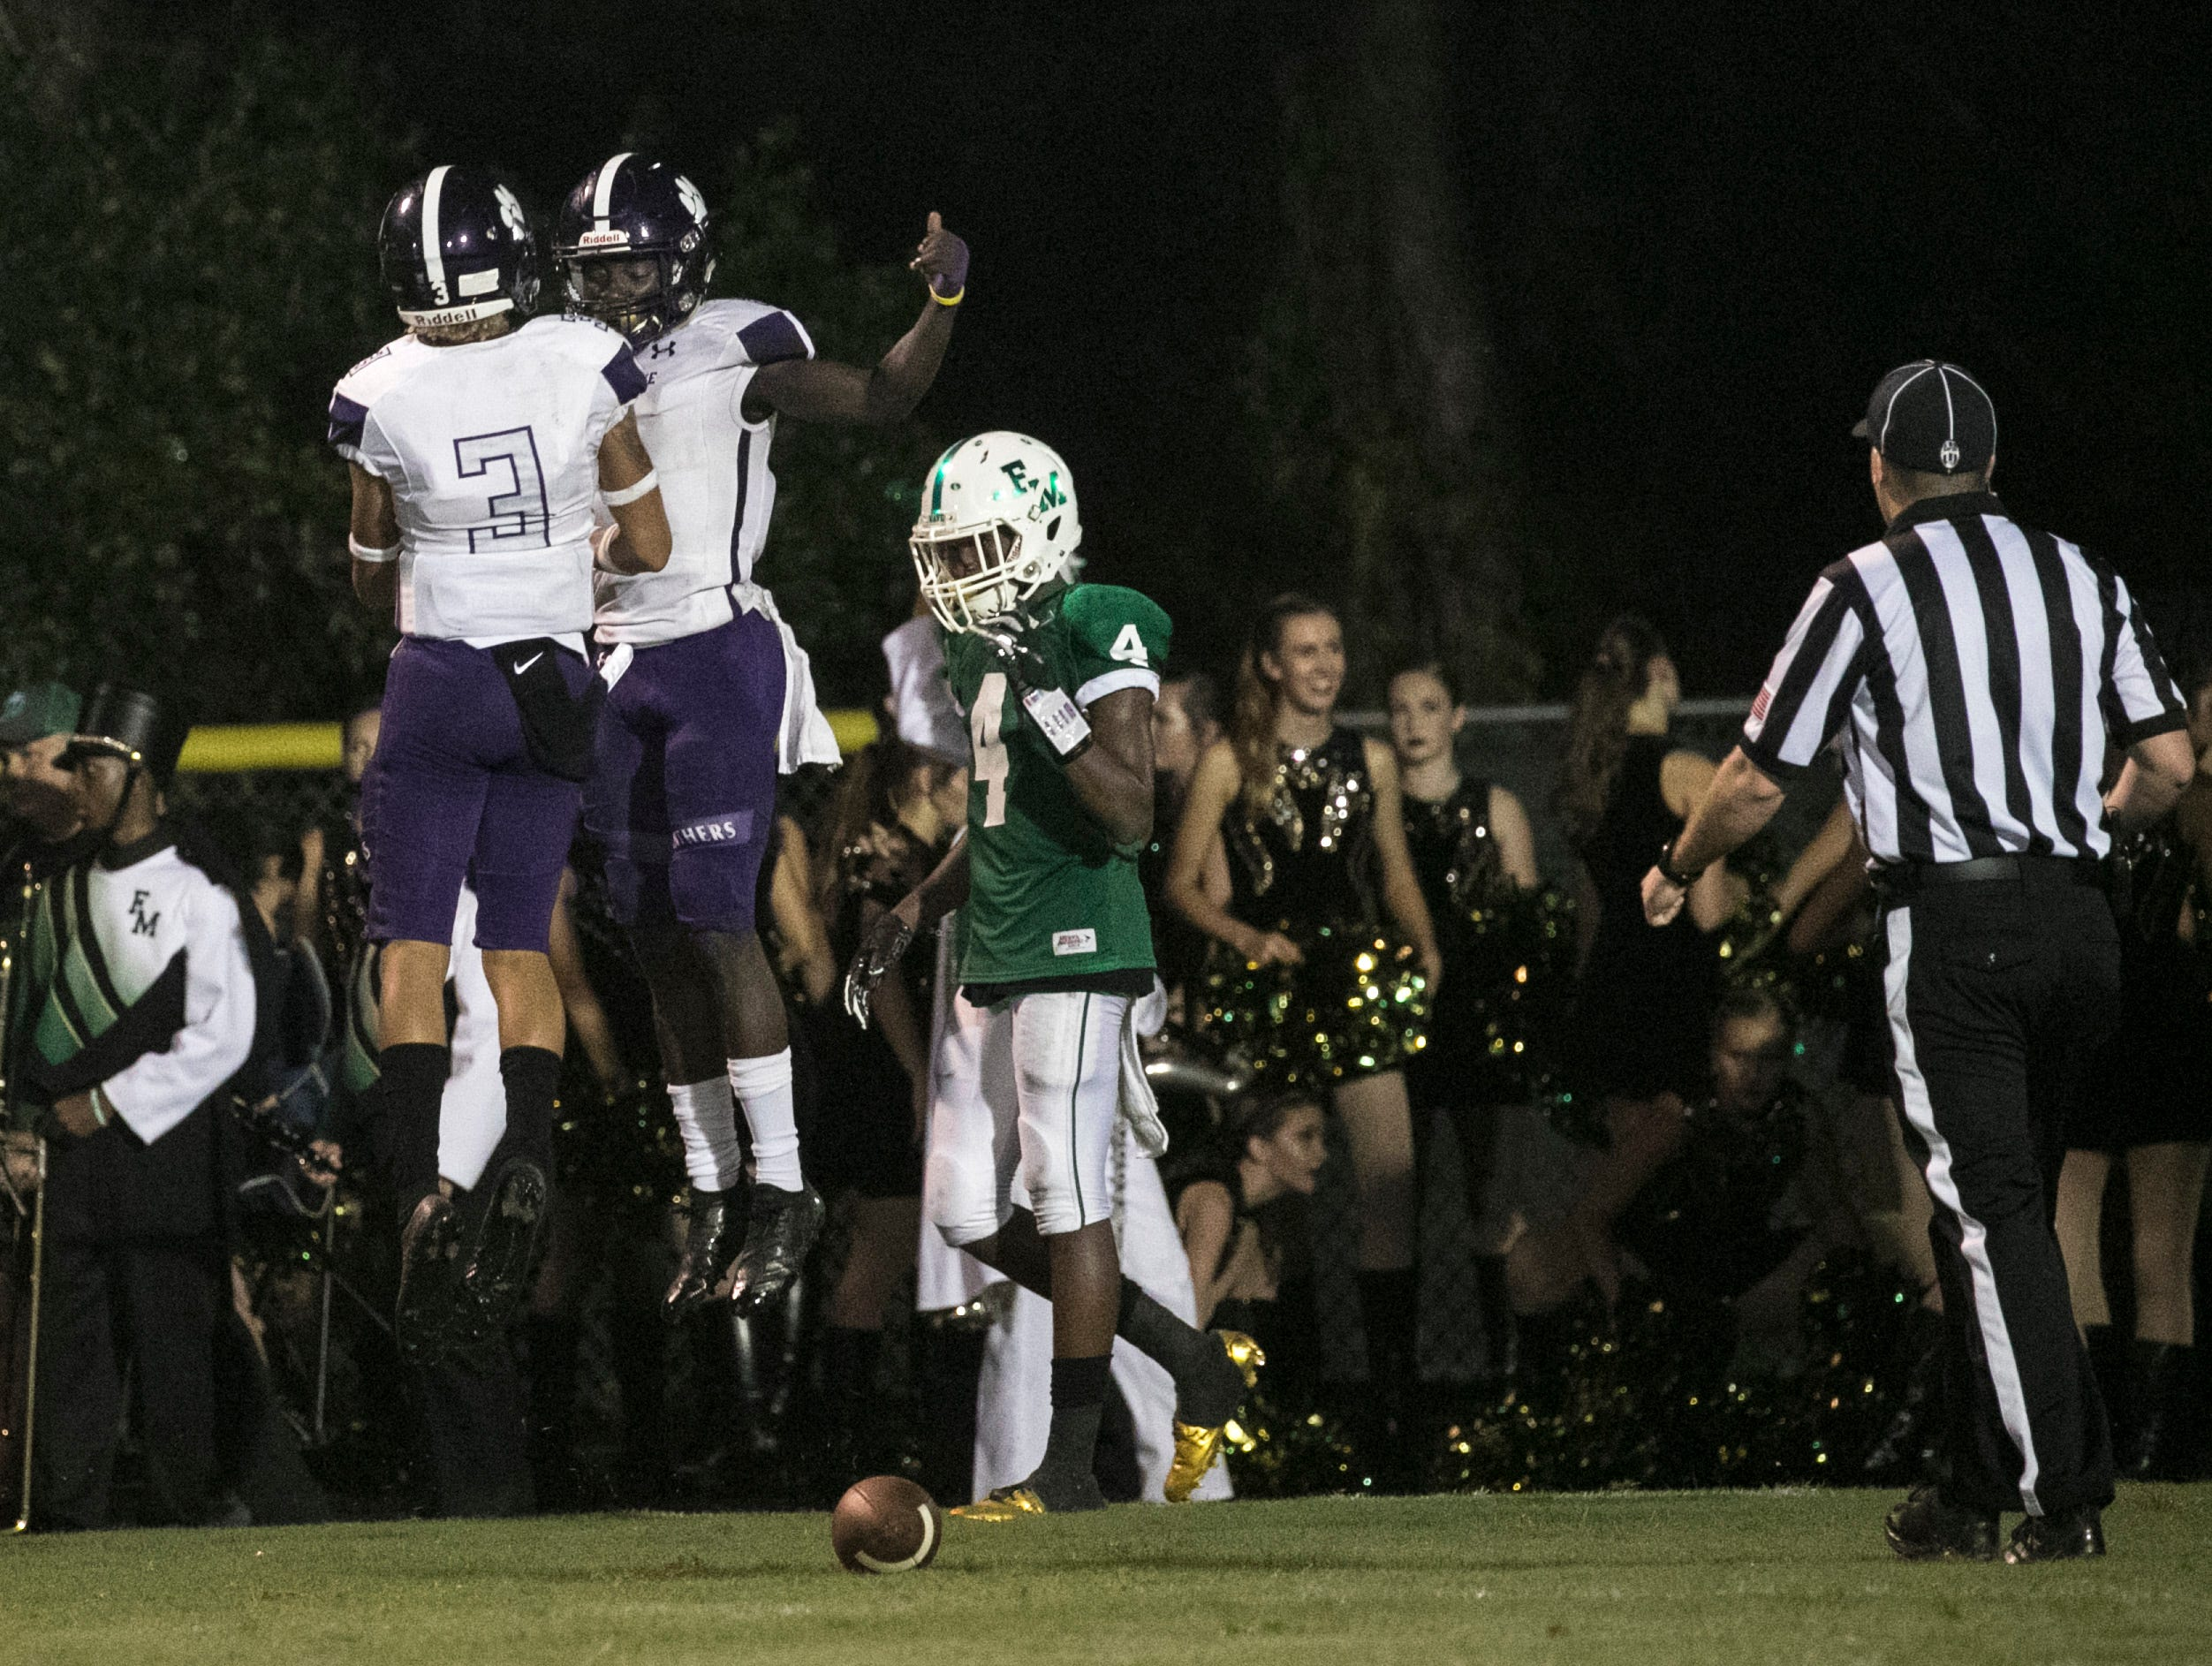 Cypress Lake's Kelsey Demps and Kyrie Savoy celebrate a touchdown by Demps on Friday, September 7, 2018, at Fort Myers High School.